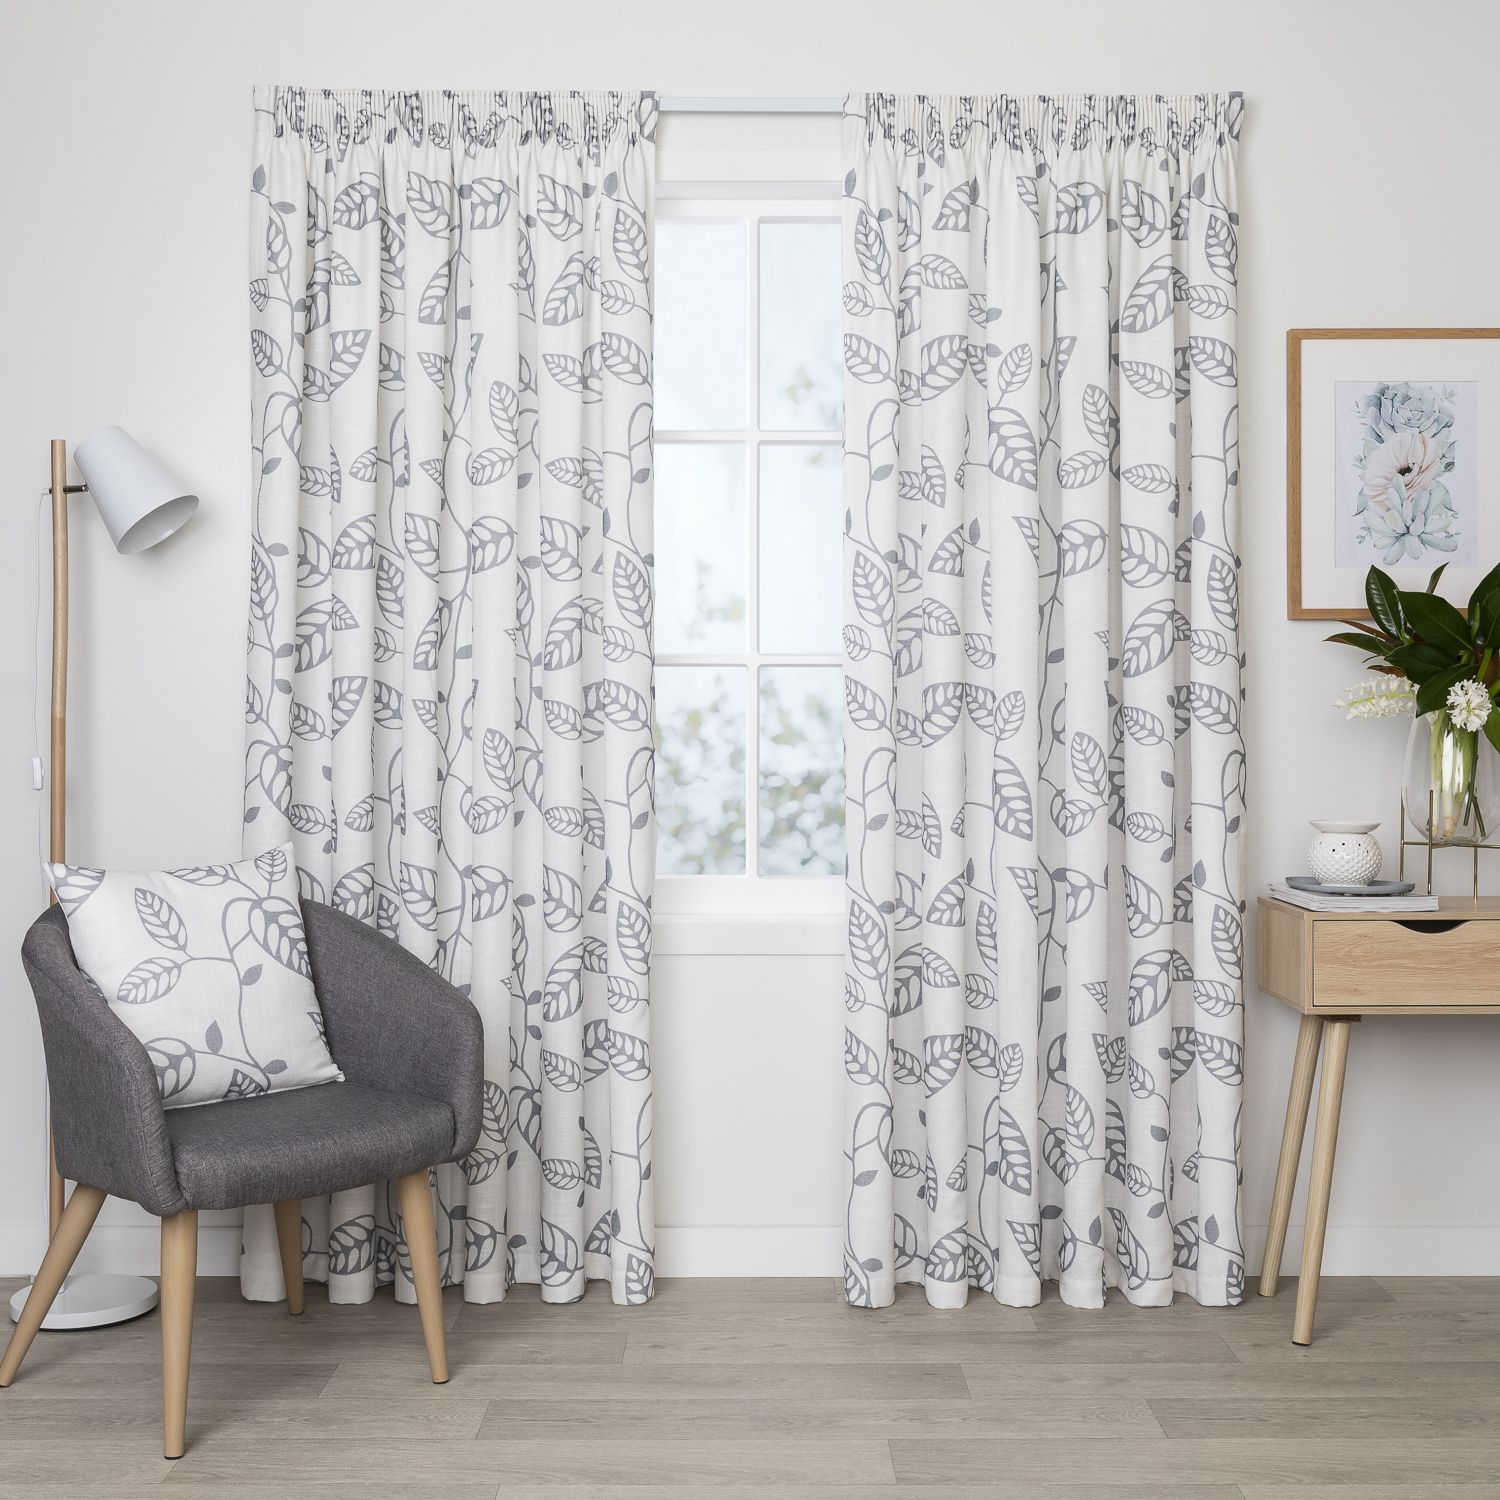 Indira Chalk Readymade Lined Pencil Pleat Curtain Curtain Studio Buy Curtains Online In 2020 Curtains Pleated Curtains Pencil Pleat